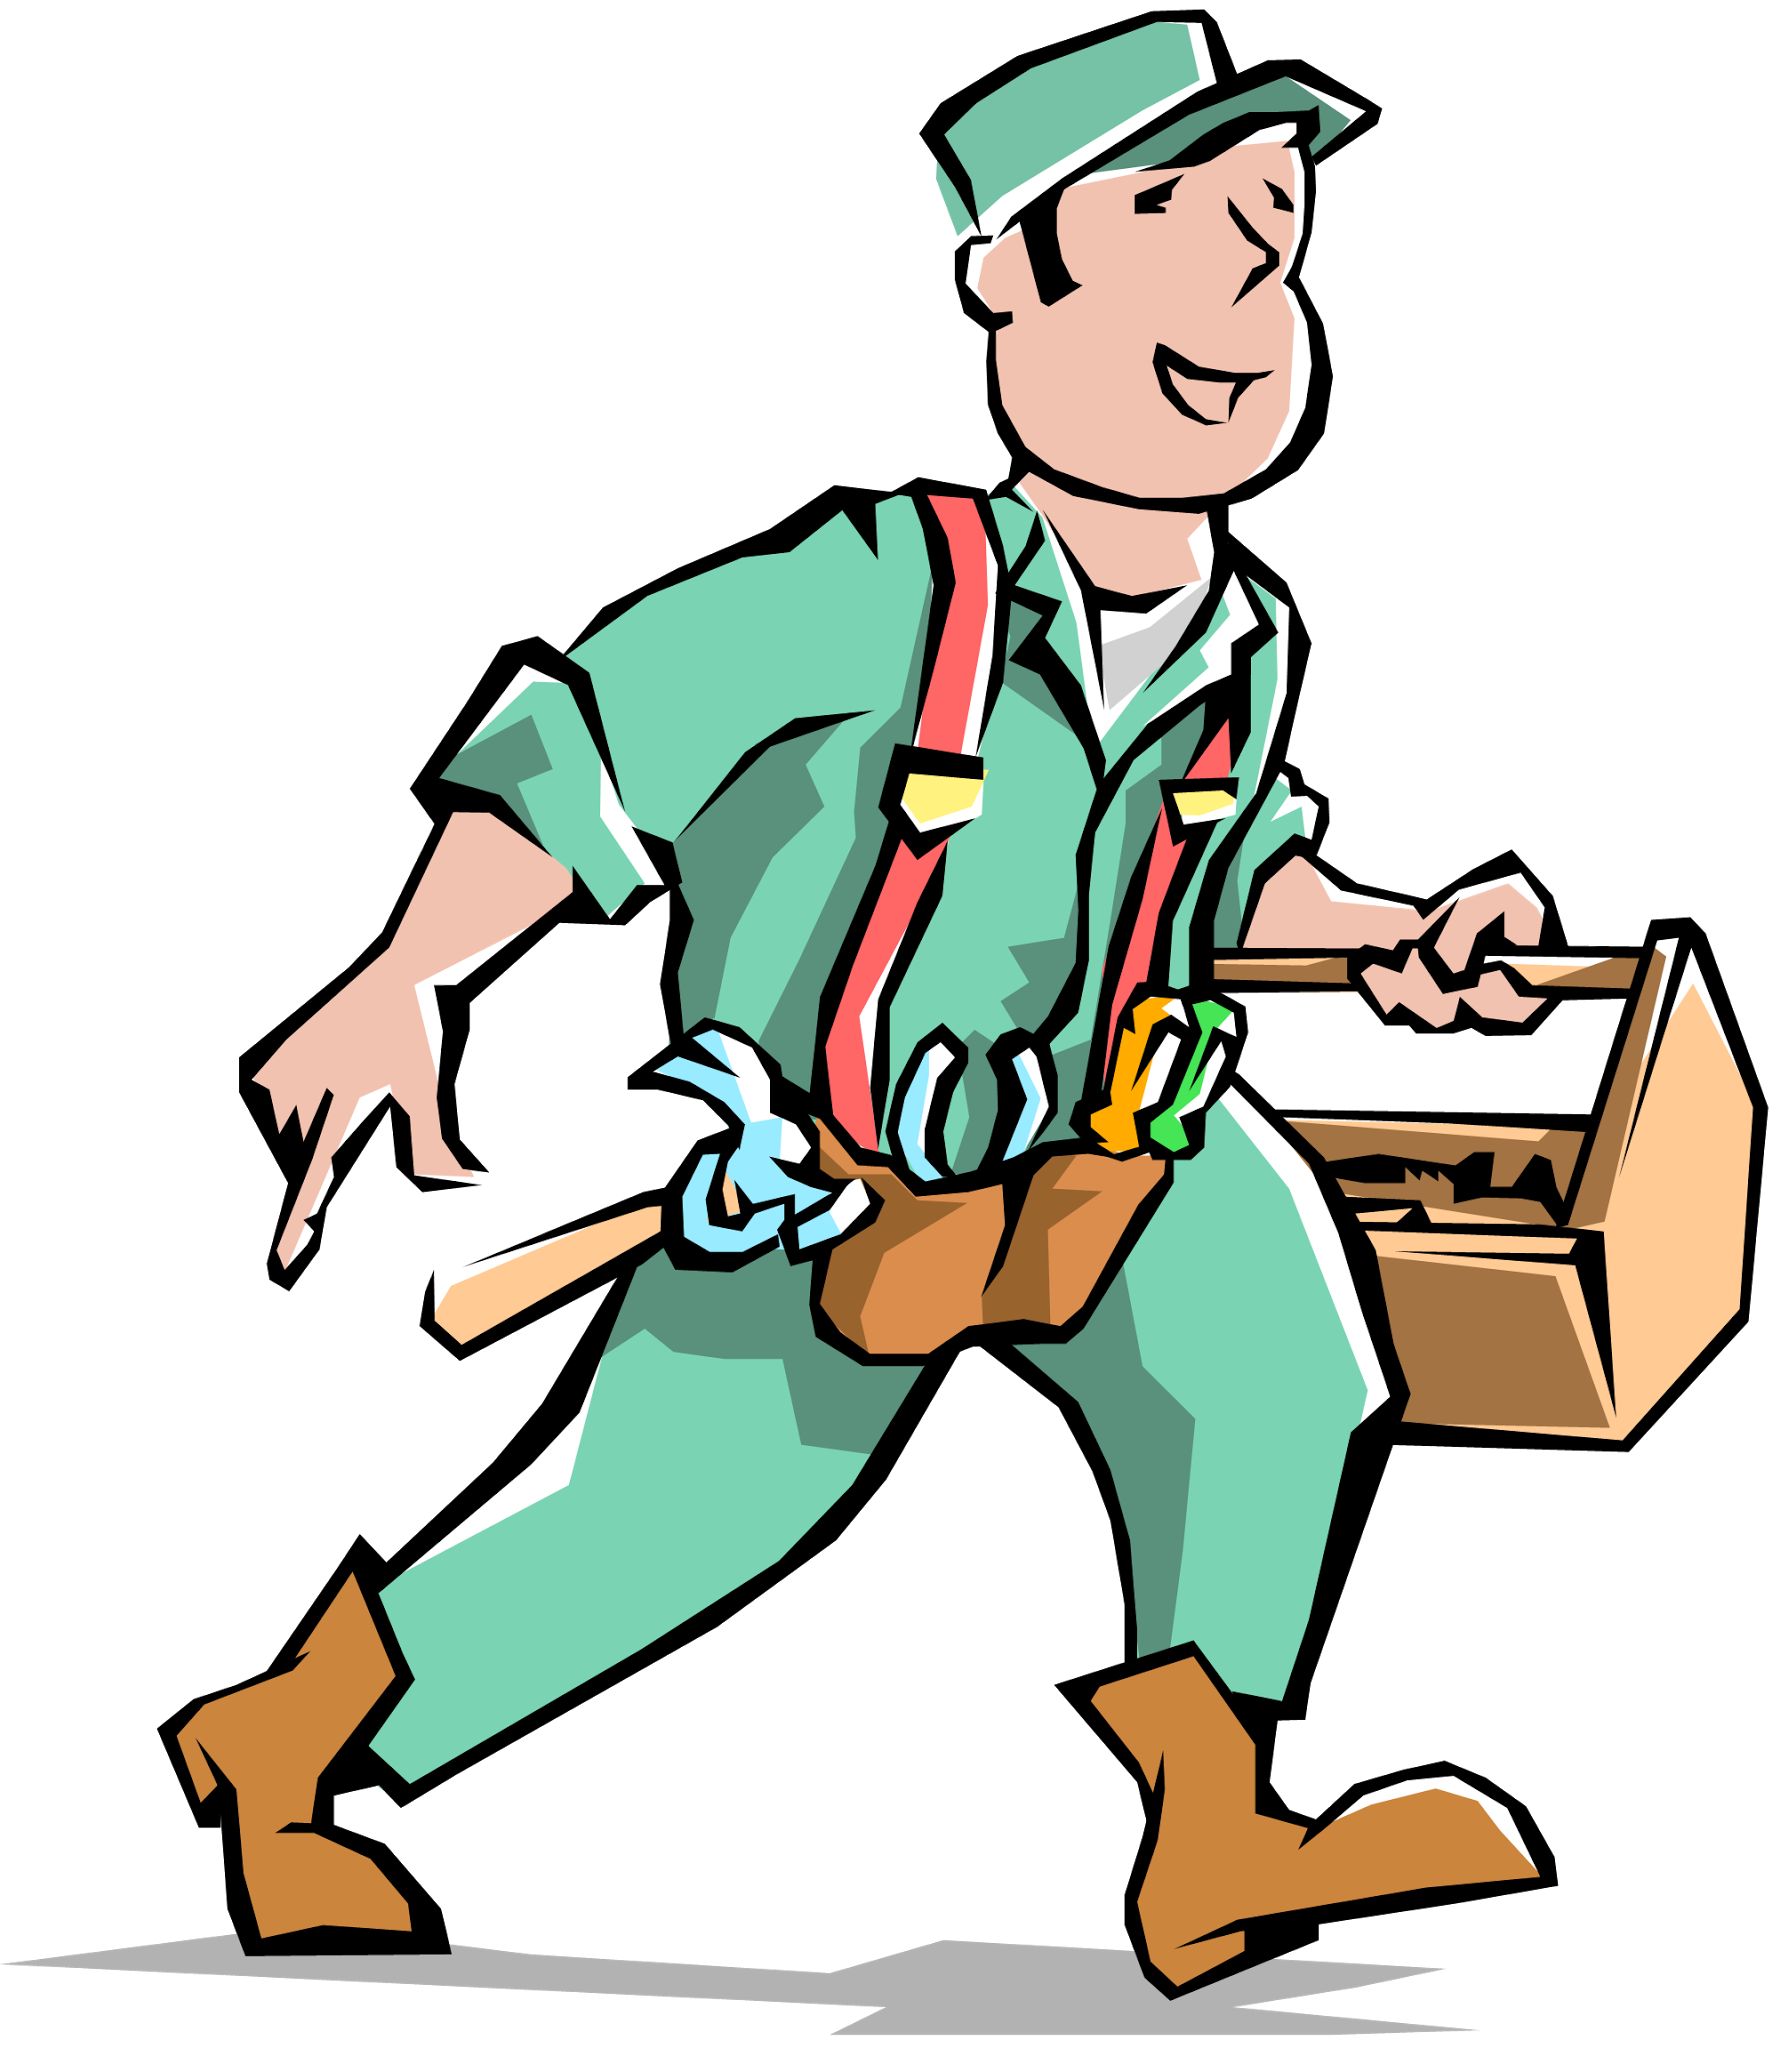 Electrician vector man. Collection of free electrition